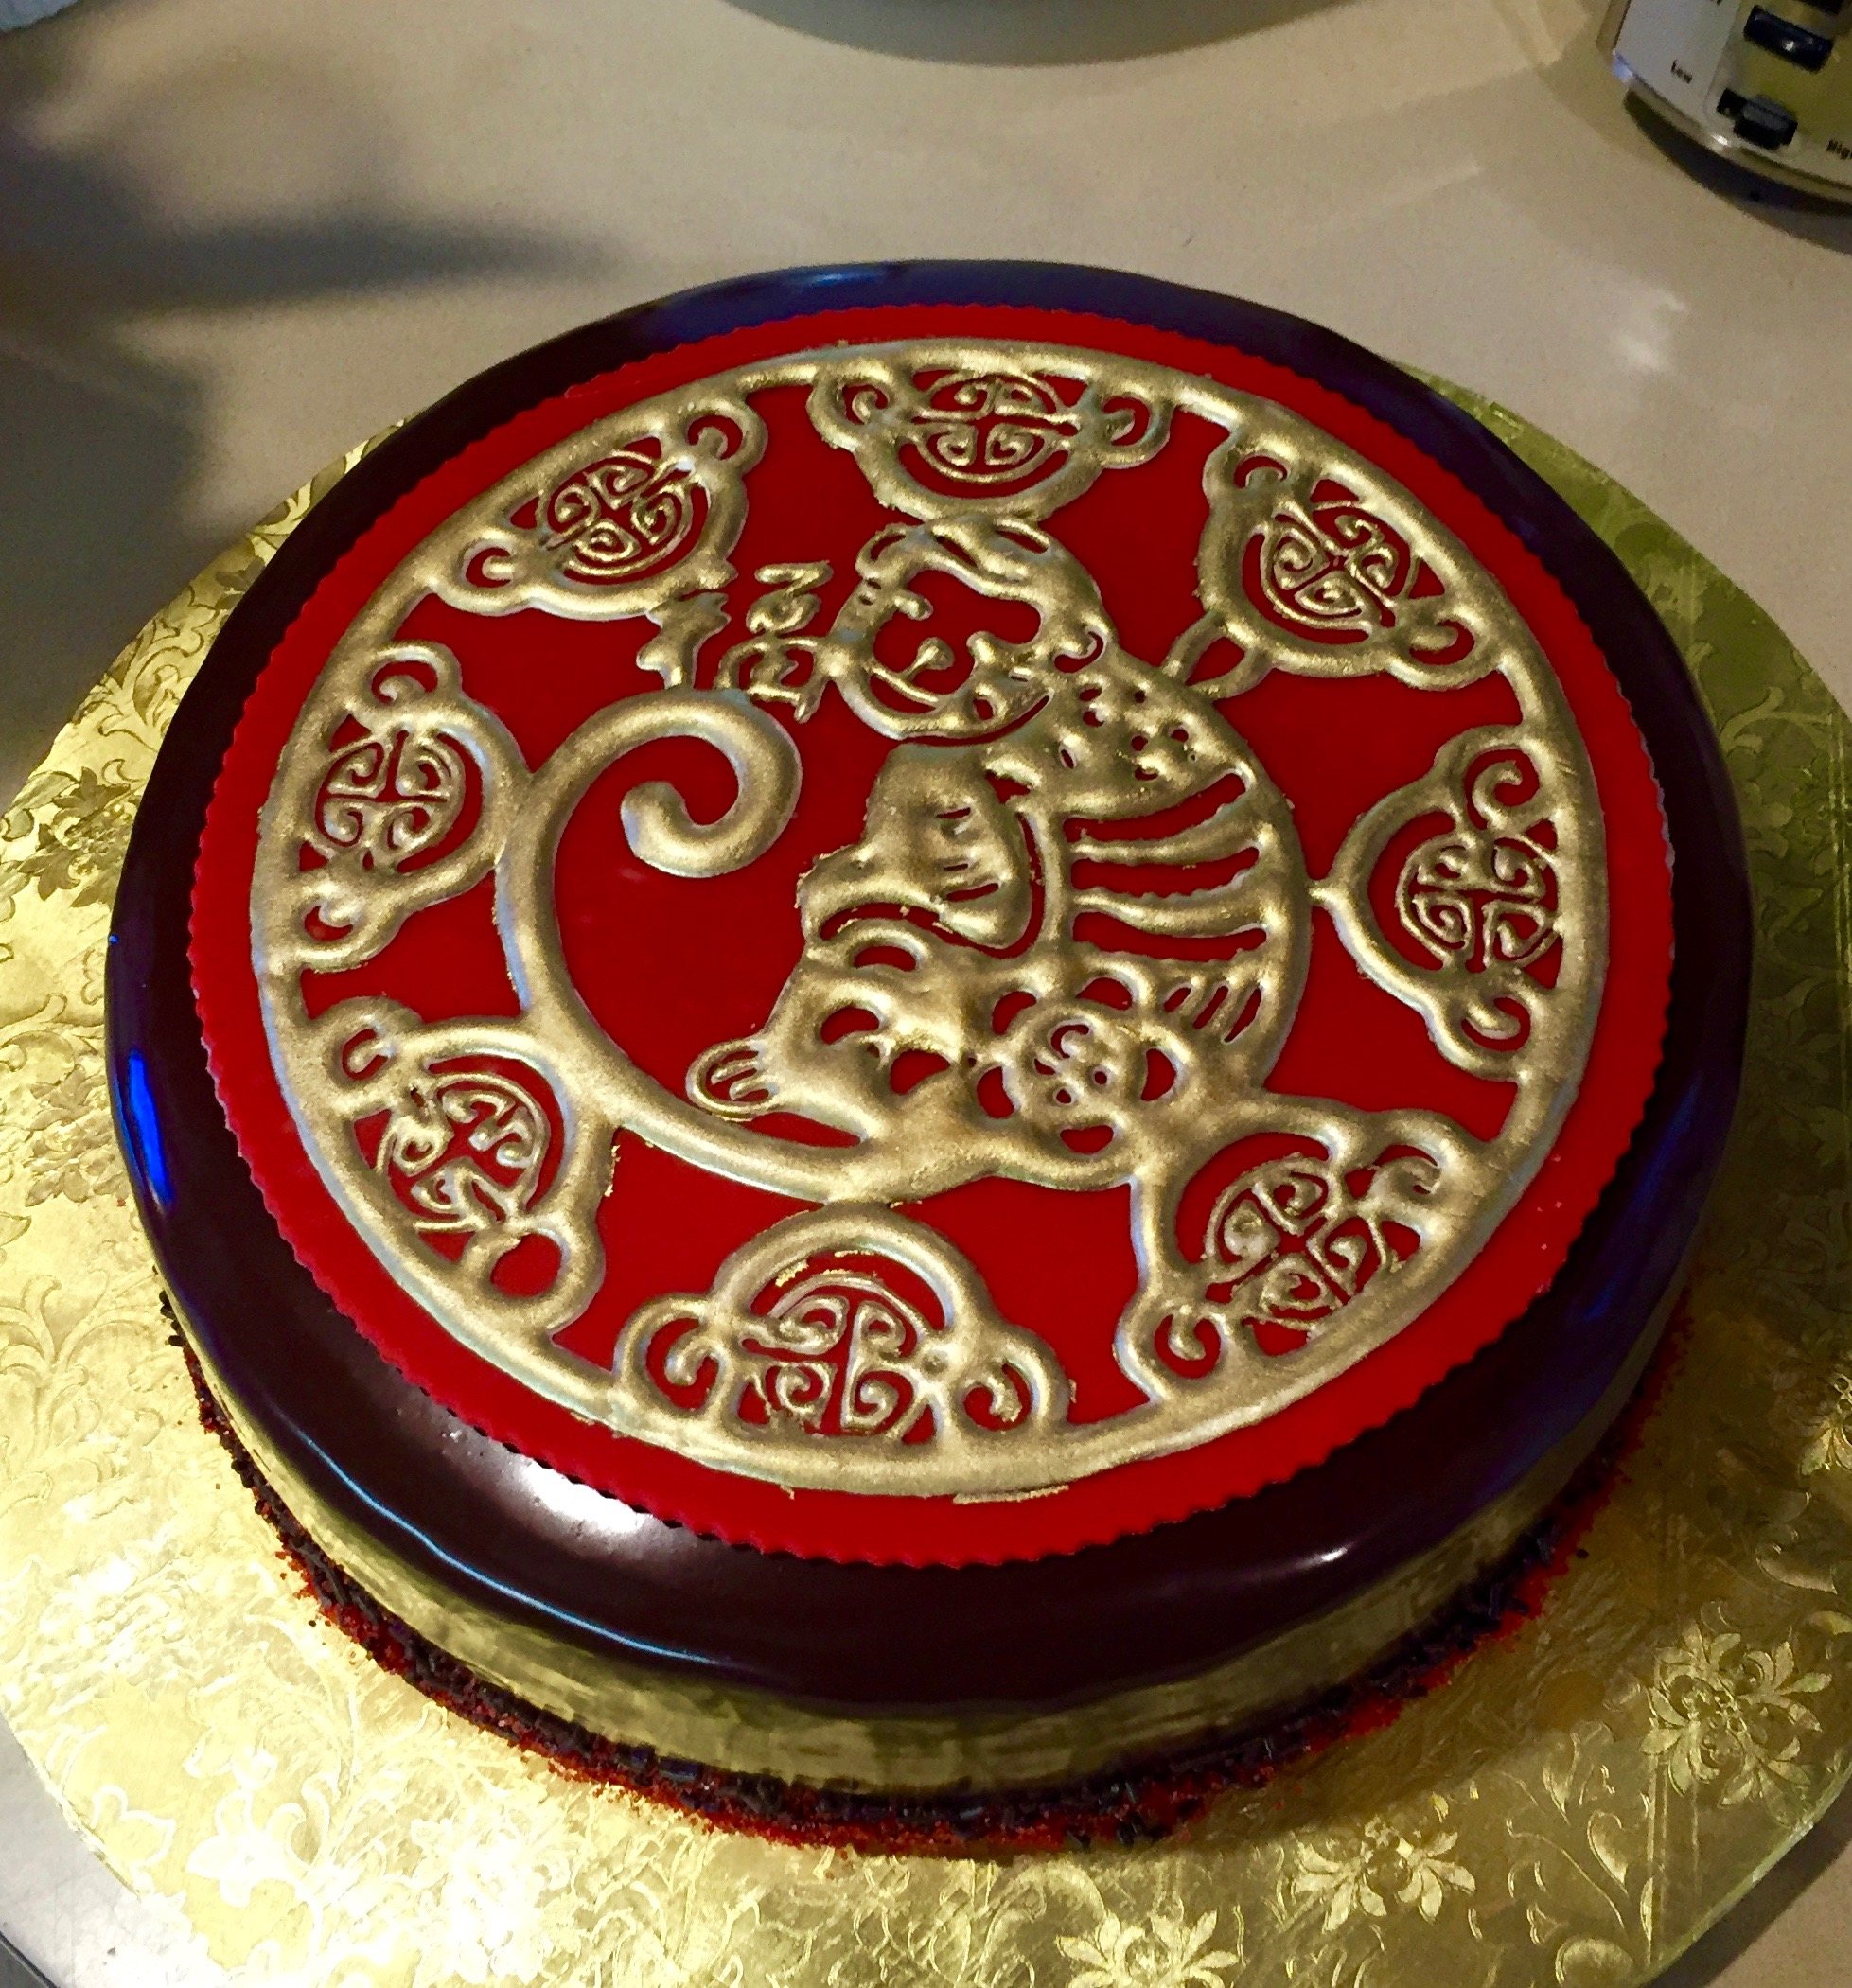 Year of the Monkey fundraising cake